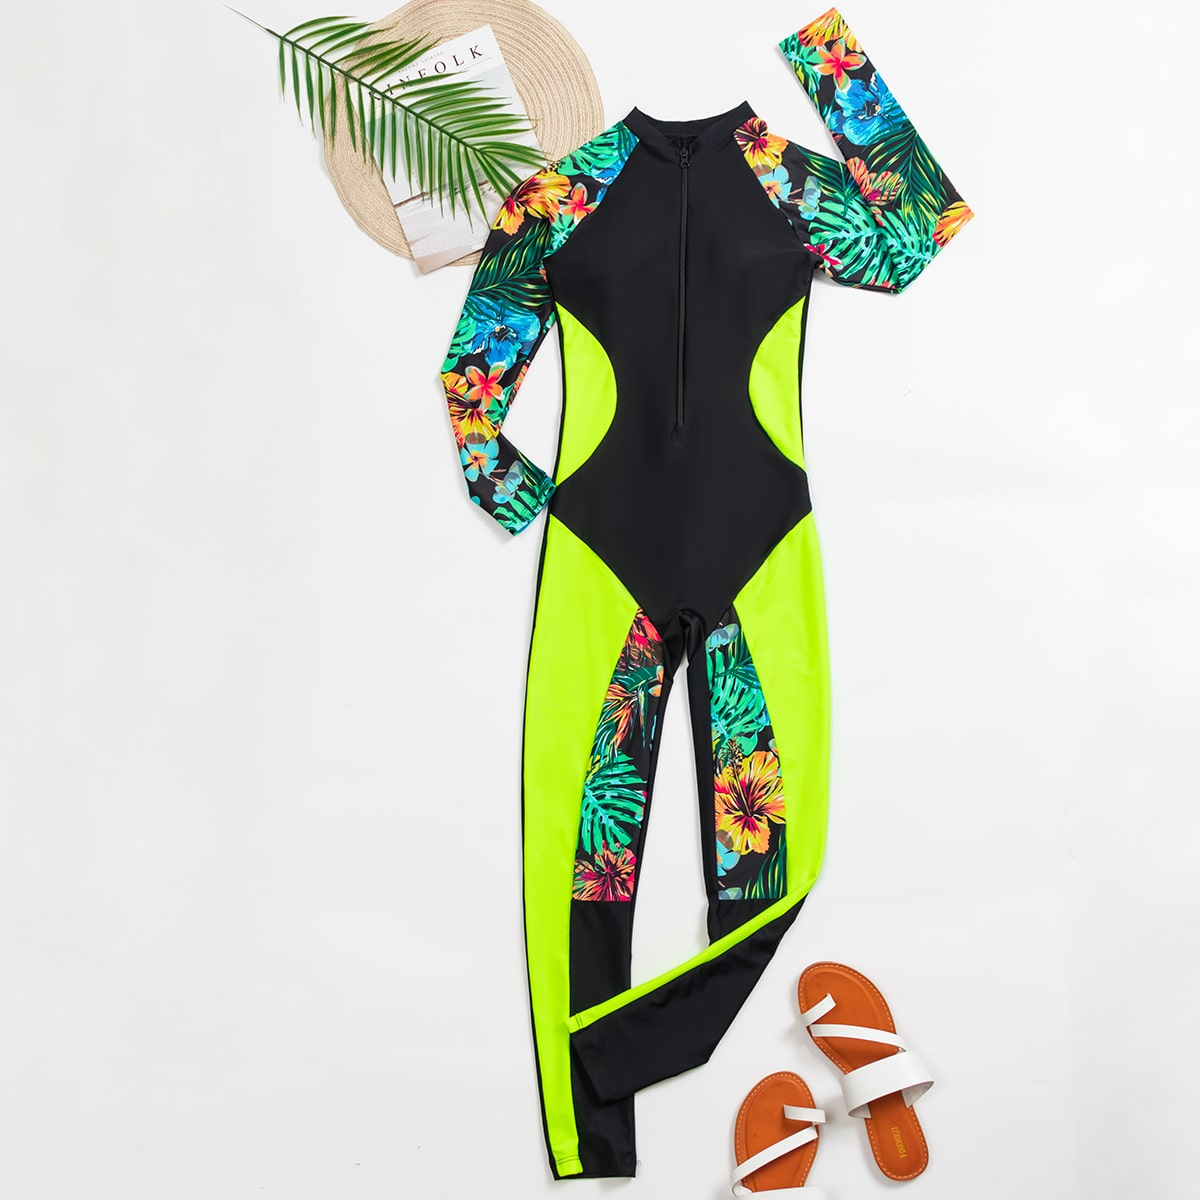 Tropical & Floral Zip-up Surfing Swimsuit